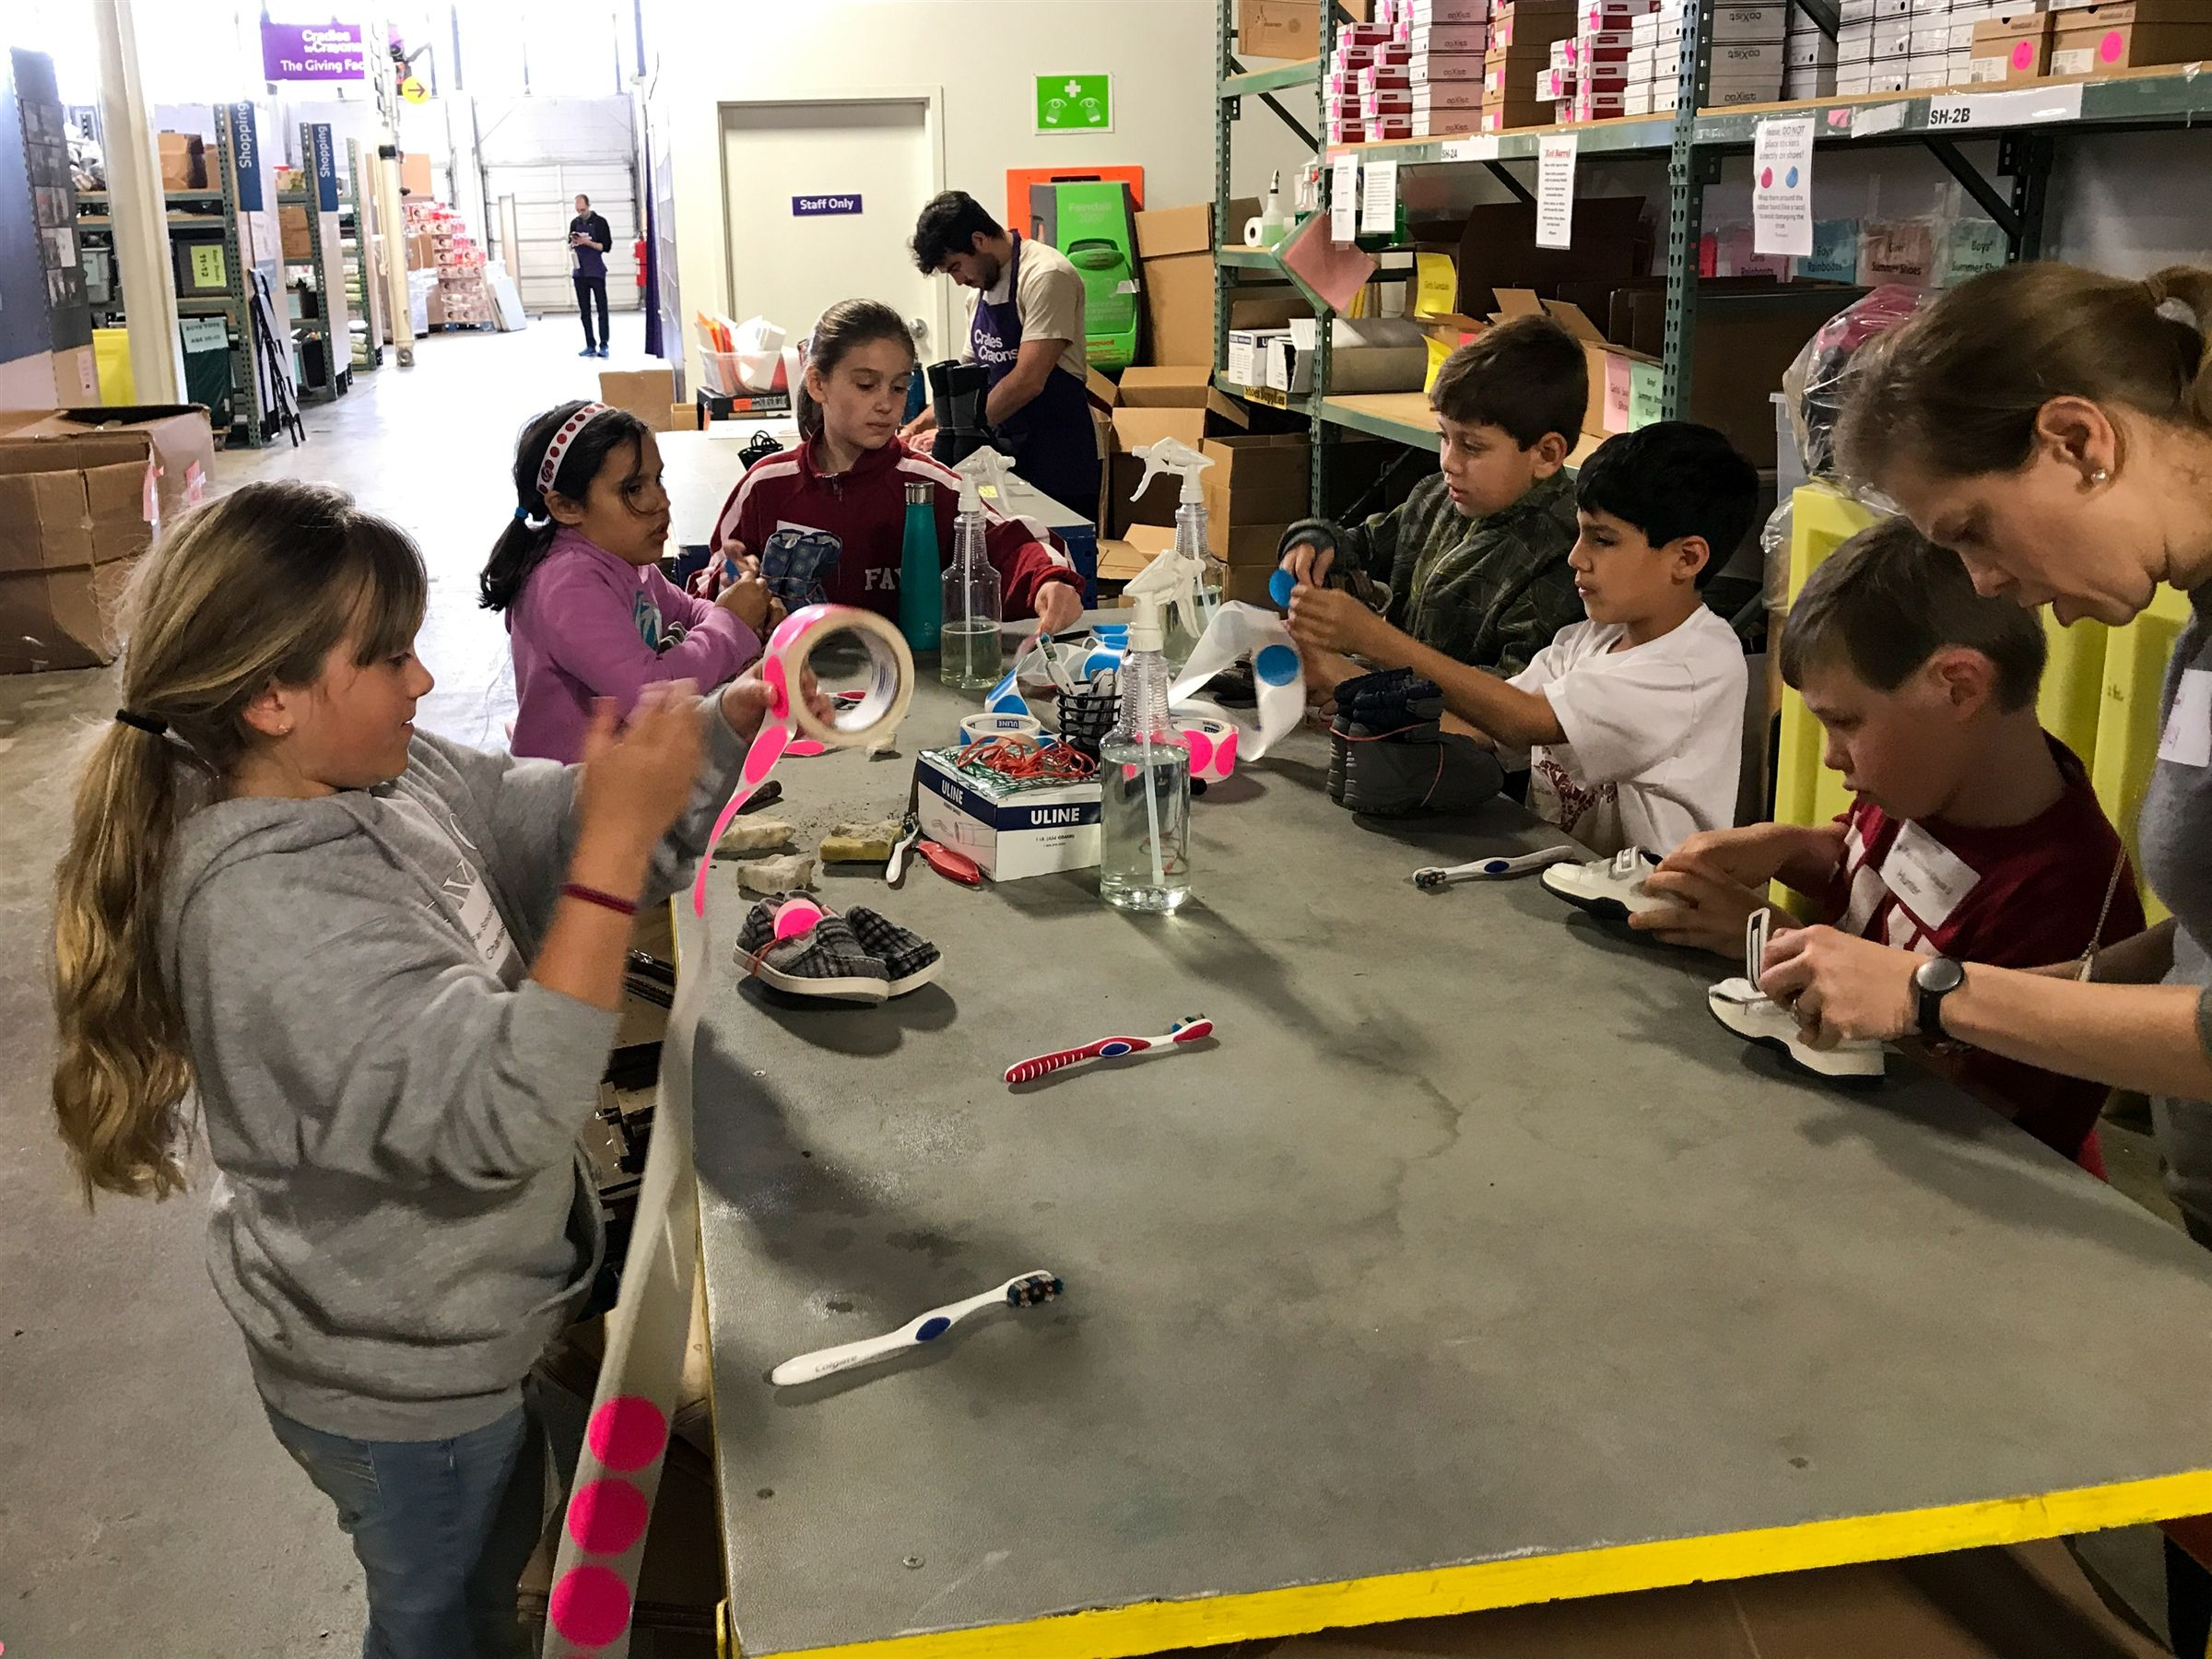 Second grade students sorting clothes and toys at Cradles to Crayons, a local nonprofit that collects and distributes clothing and school supplies to disadvantaged children.